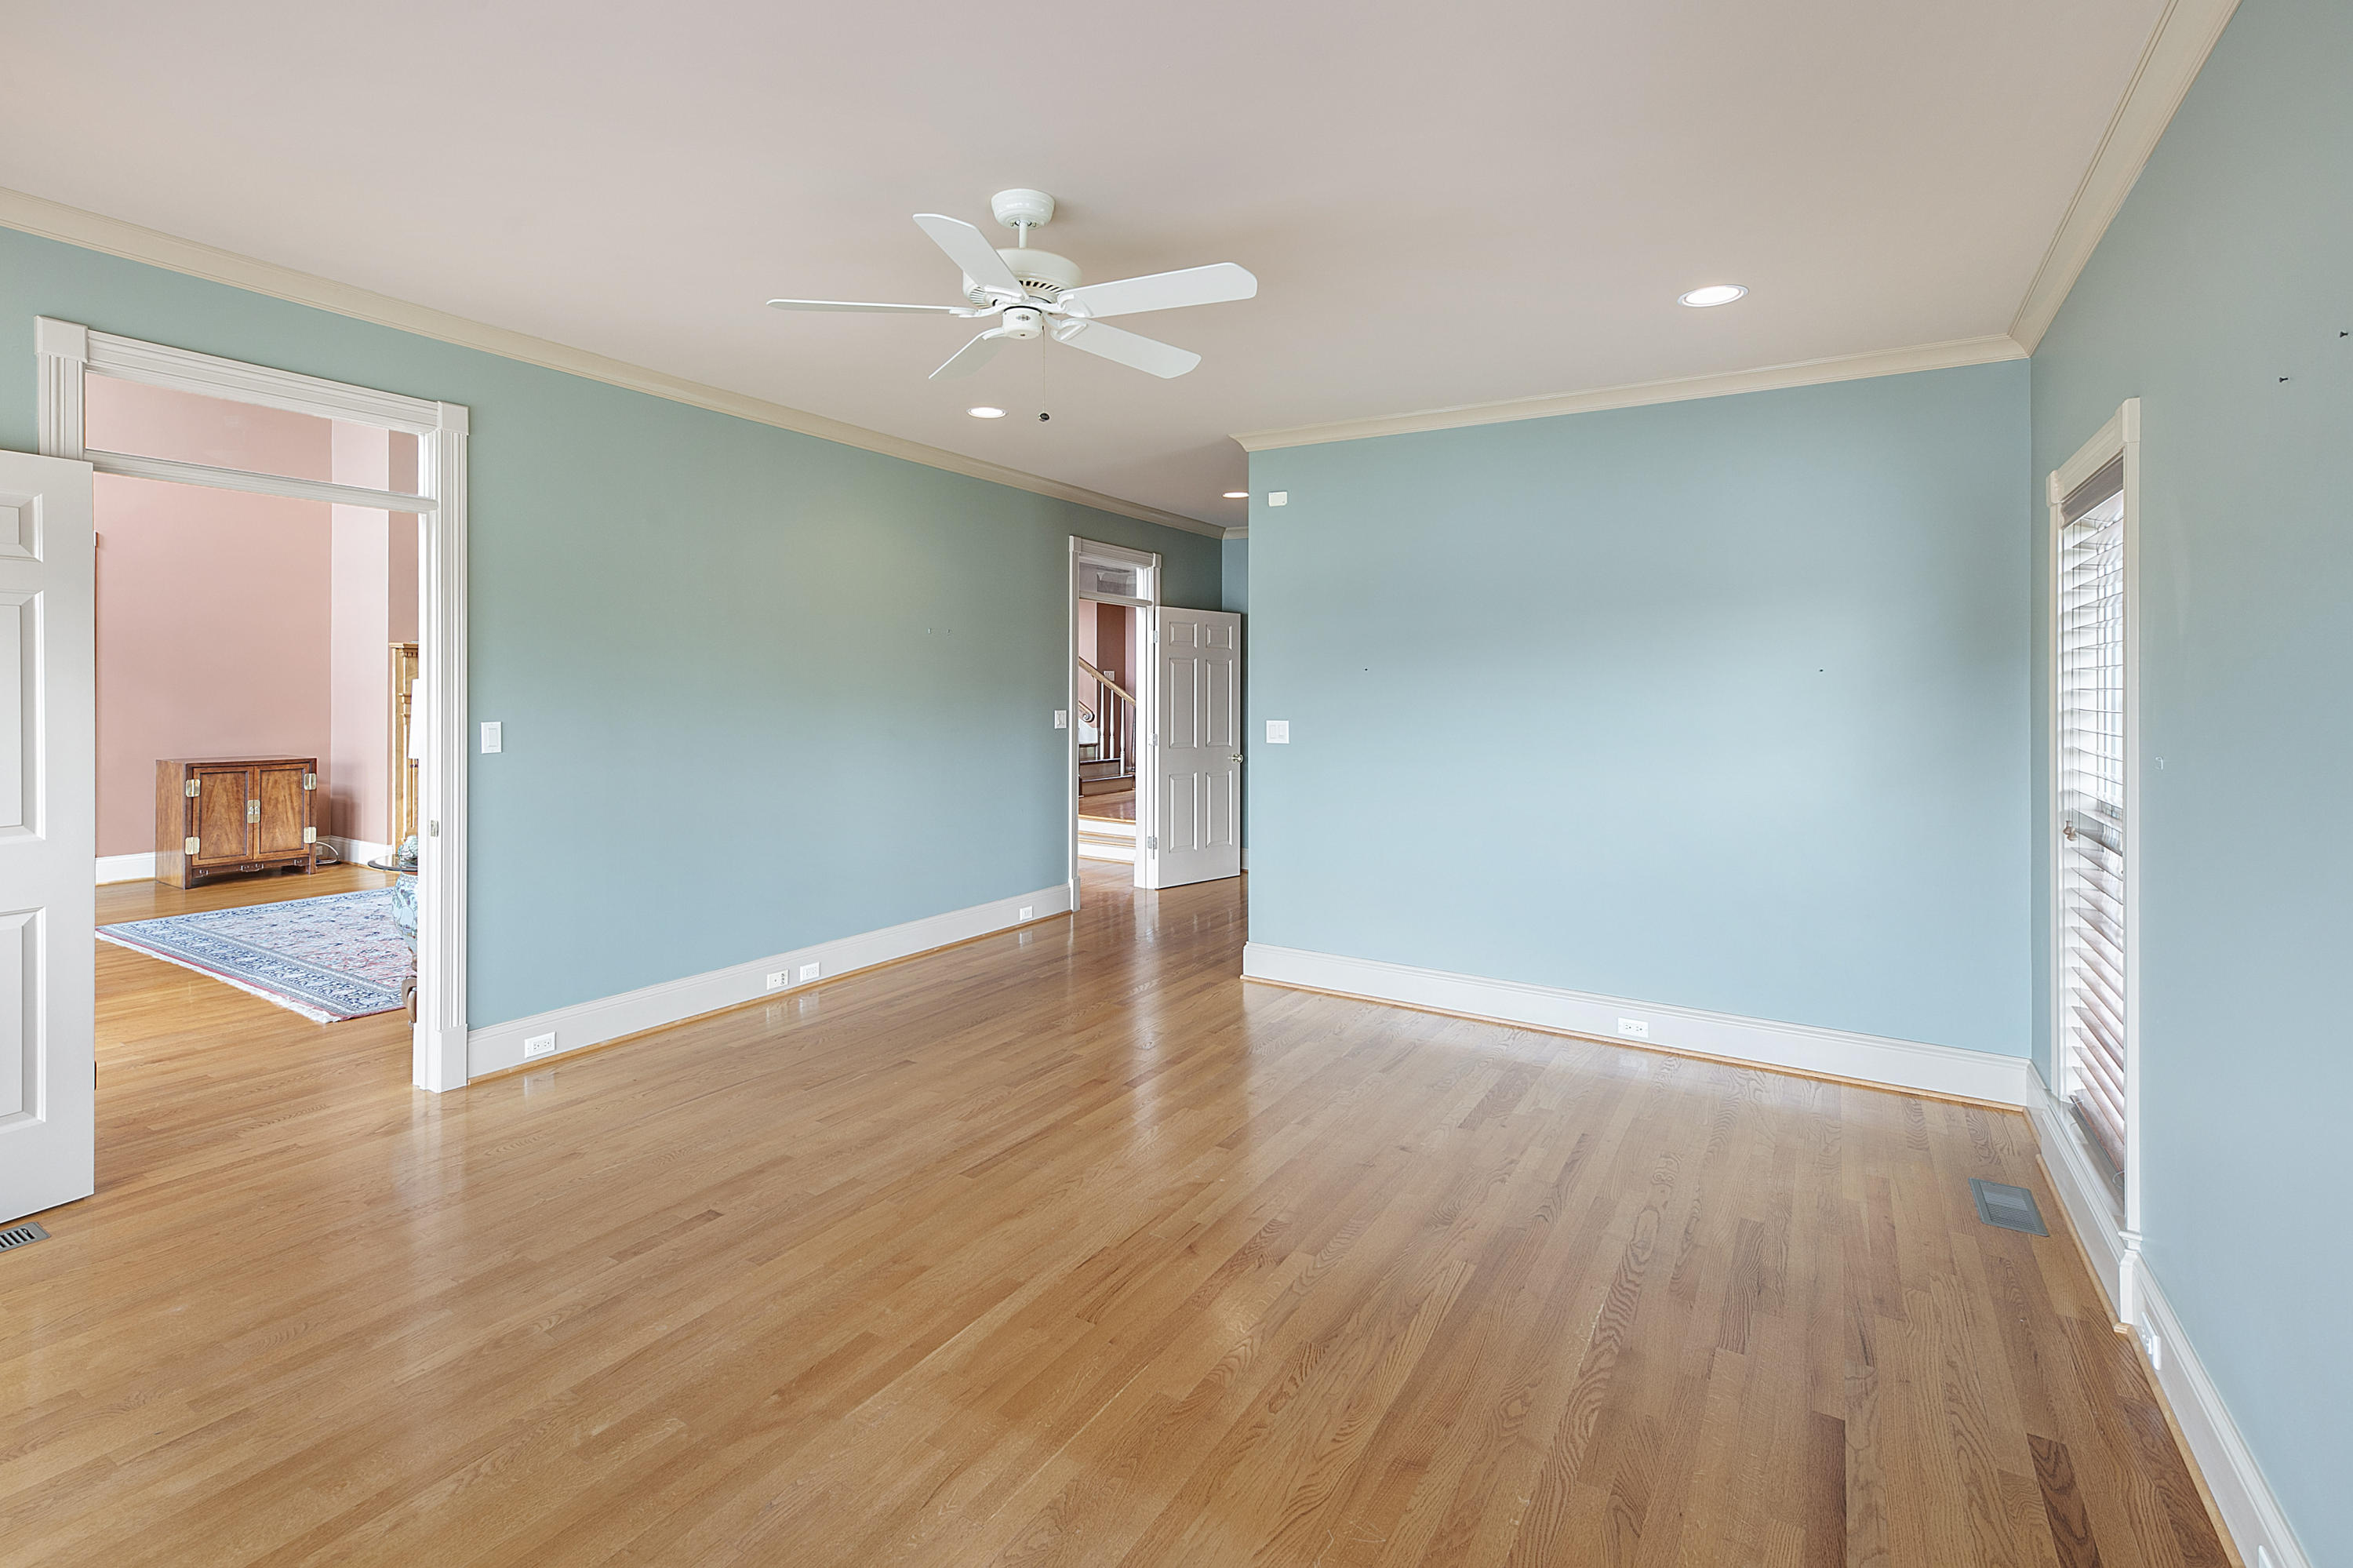 4746 Colonial Harbor Drive: